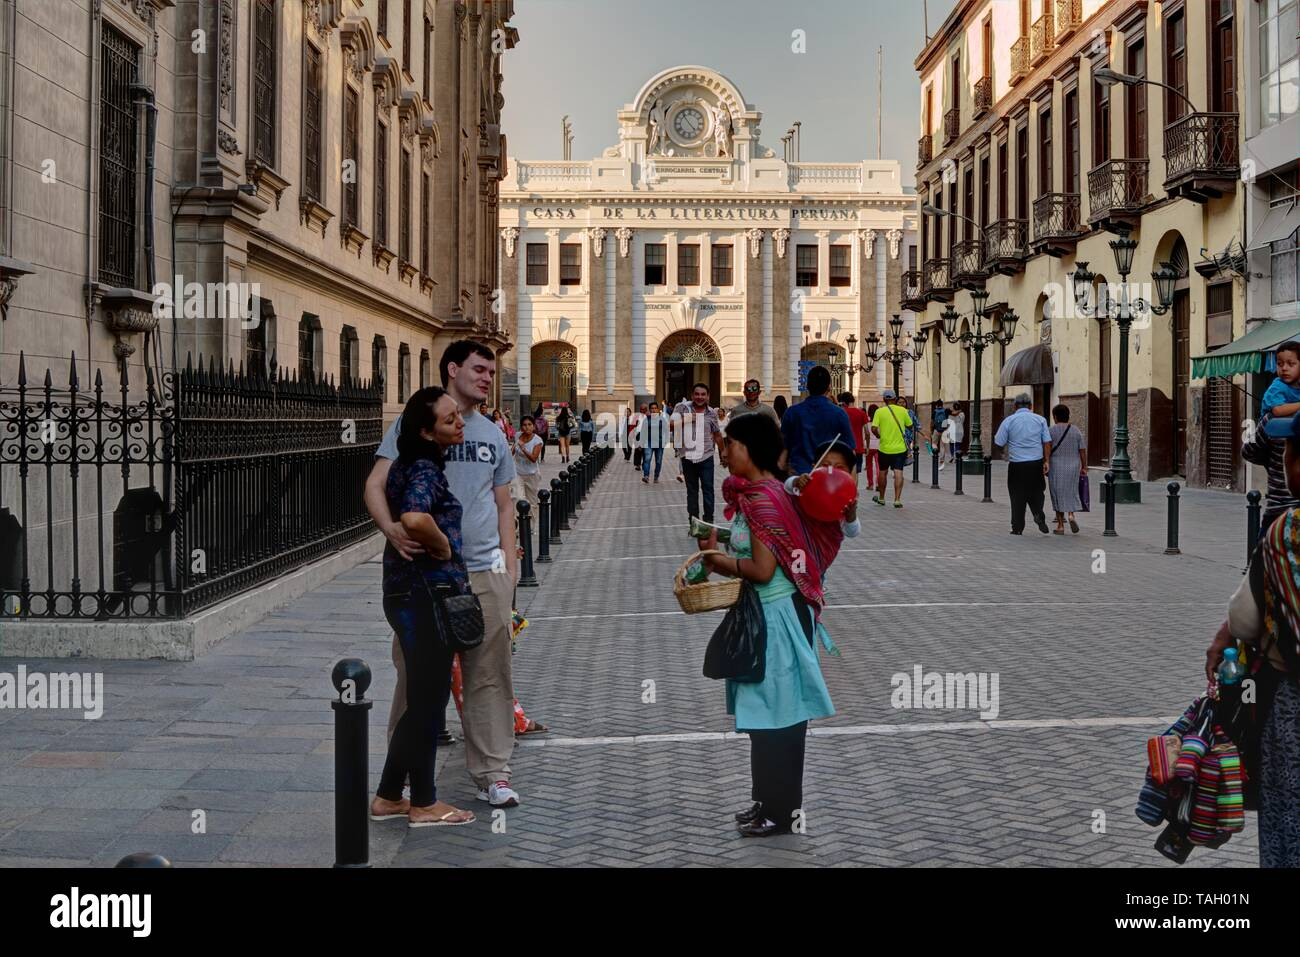 Lima, Peru - April 21, 2018: Woman with baby selling goods to tourists outside Casa de la Literatura Peruana which translates to House of Peruvian Lit - Stock Image